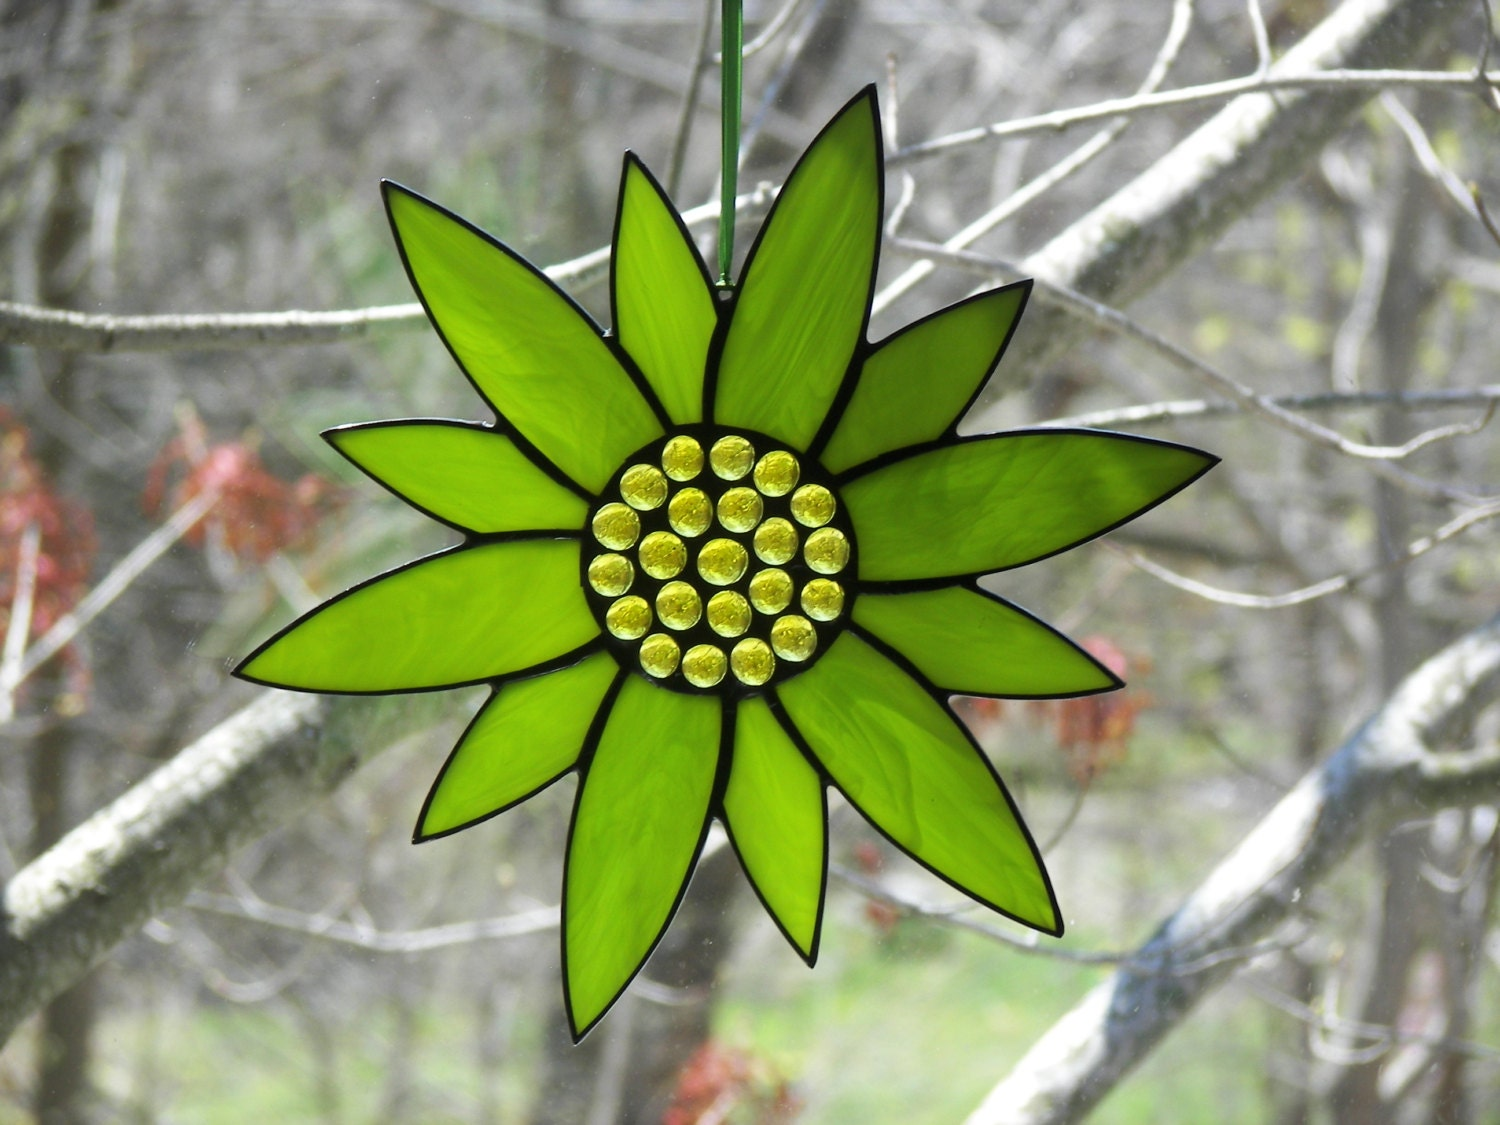 Stained Glass Flower Lime Green Stainegd Glass Suncatcher